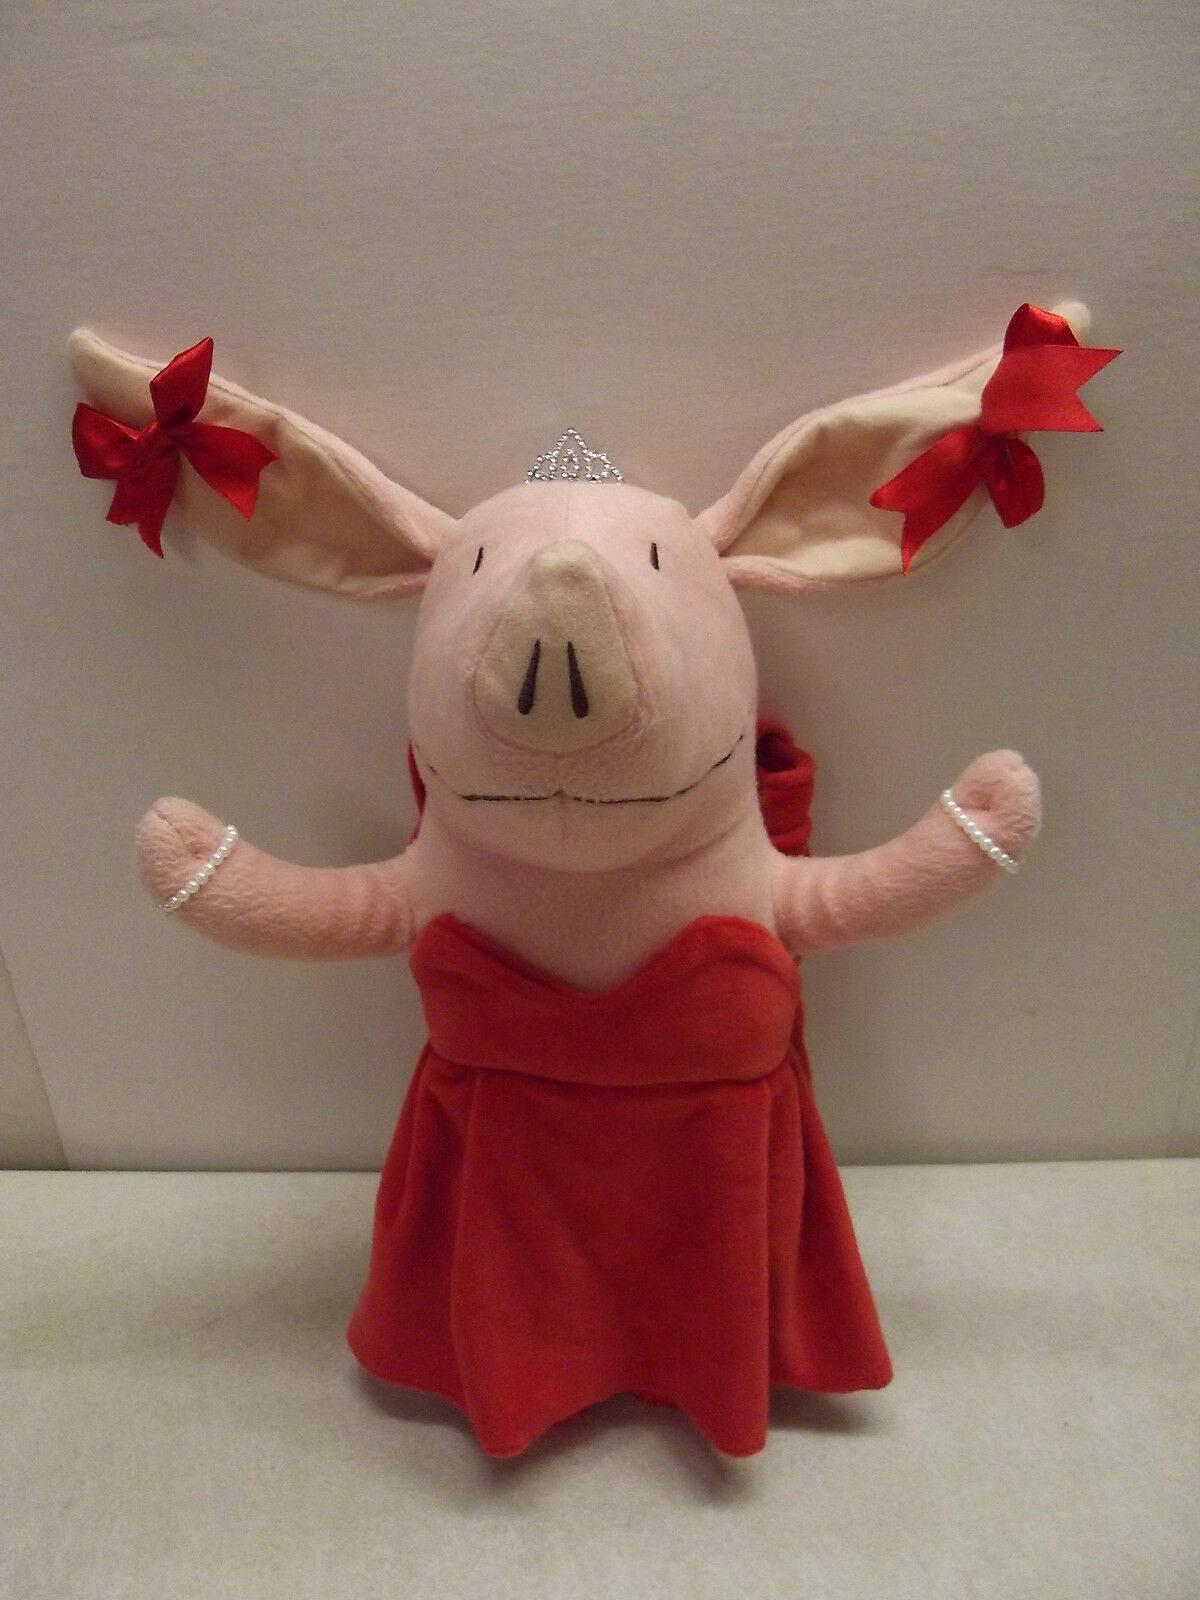 OLIVIA THE PIG GLAMOUR PLUSH RED DRESS JEWELRY OPERA SINGER HANDBAG TOTE DOLL